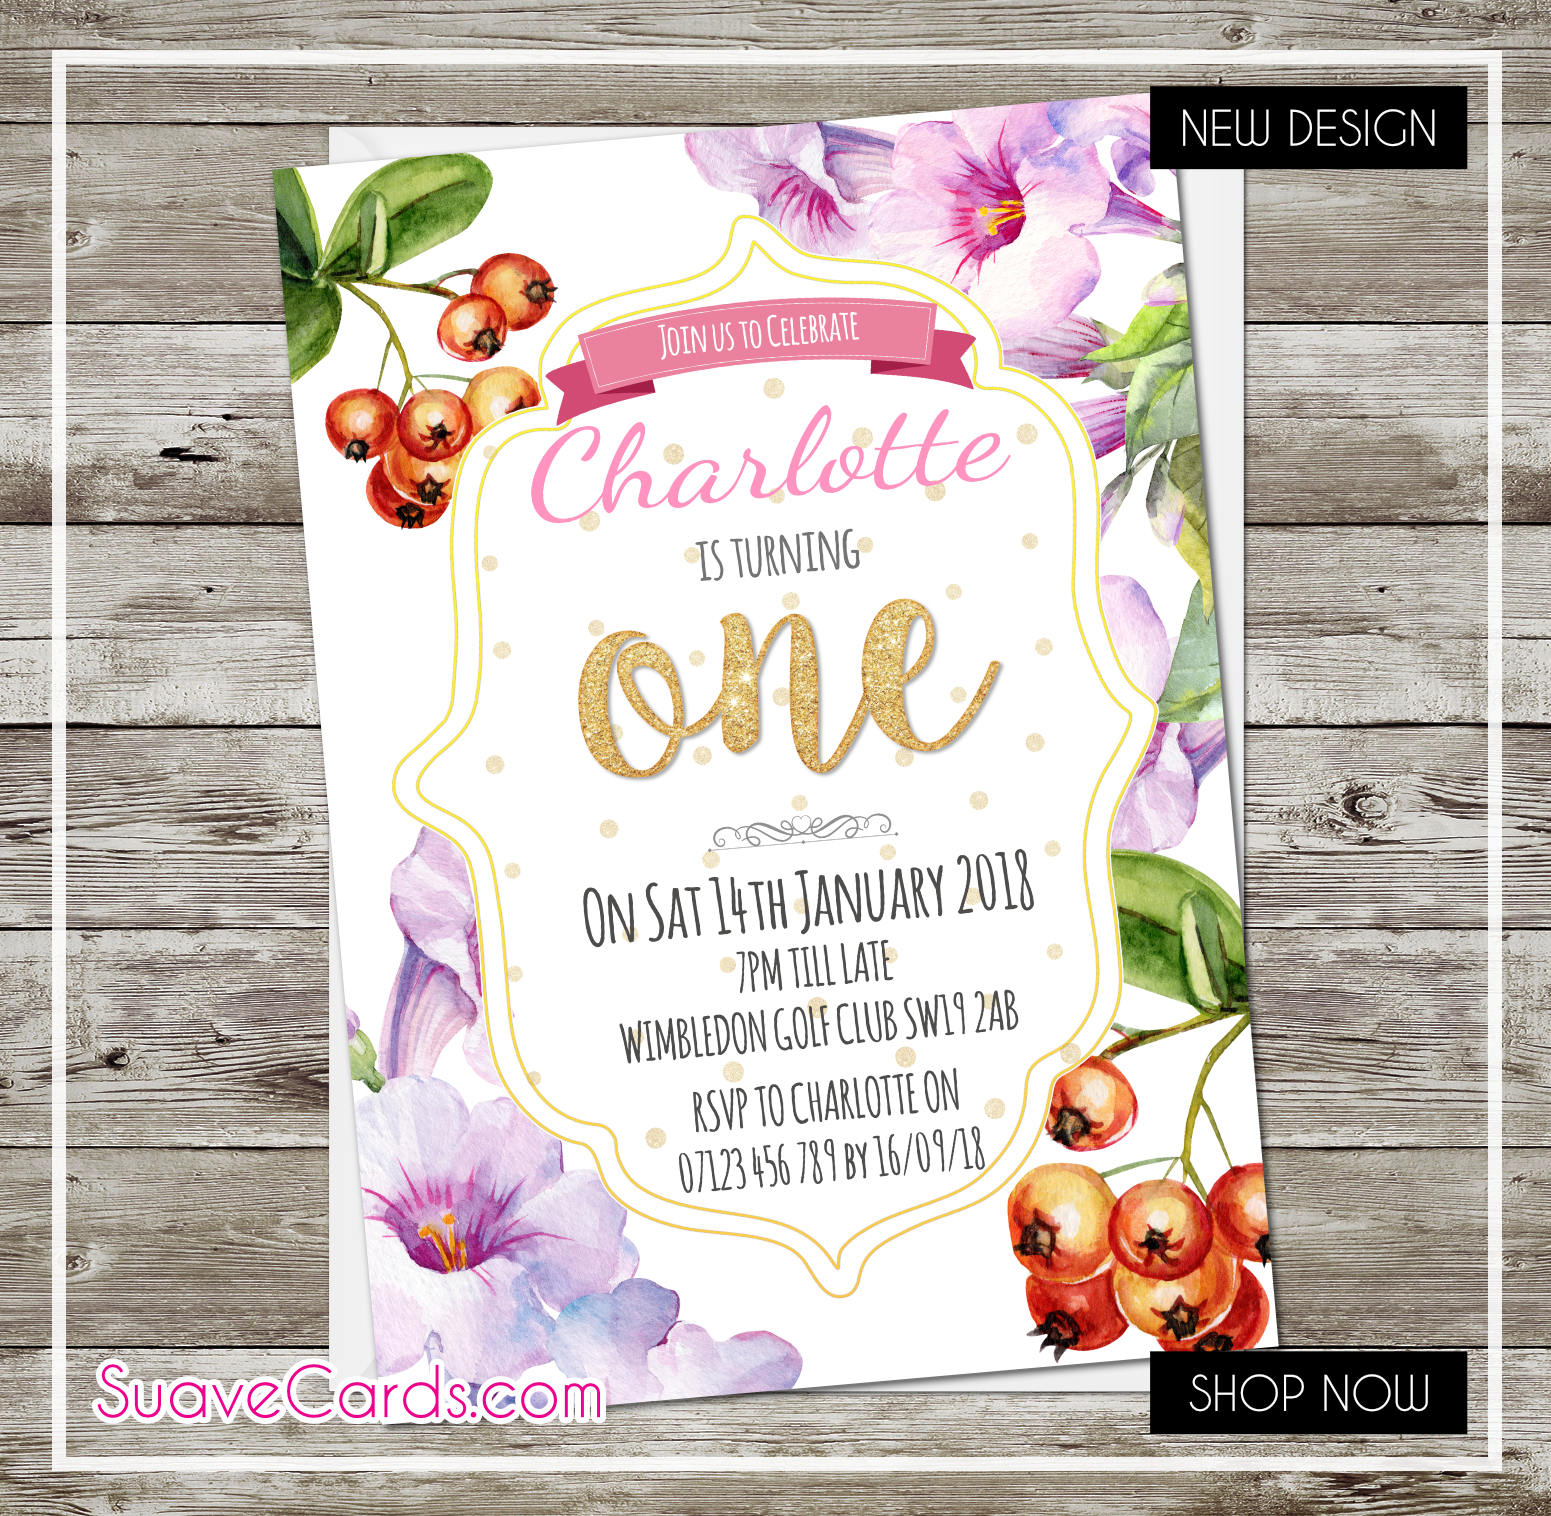 Personalised Cards | Product categories | SuaveCards.com